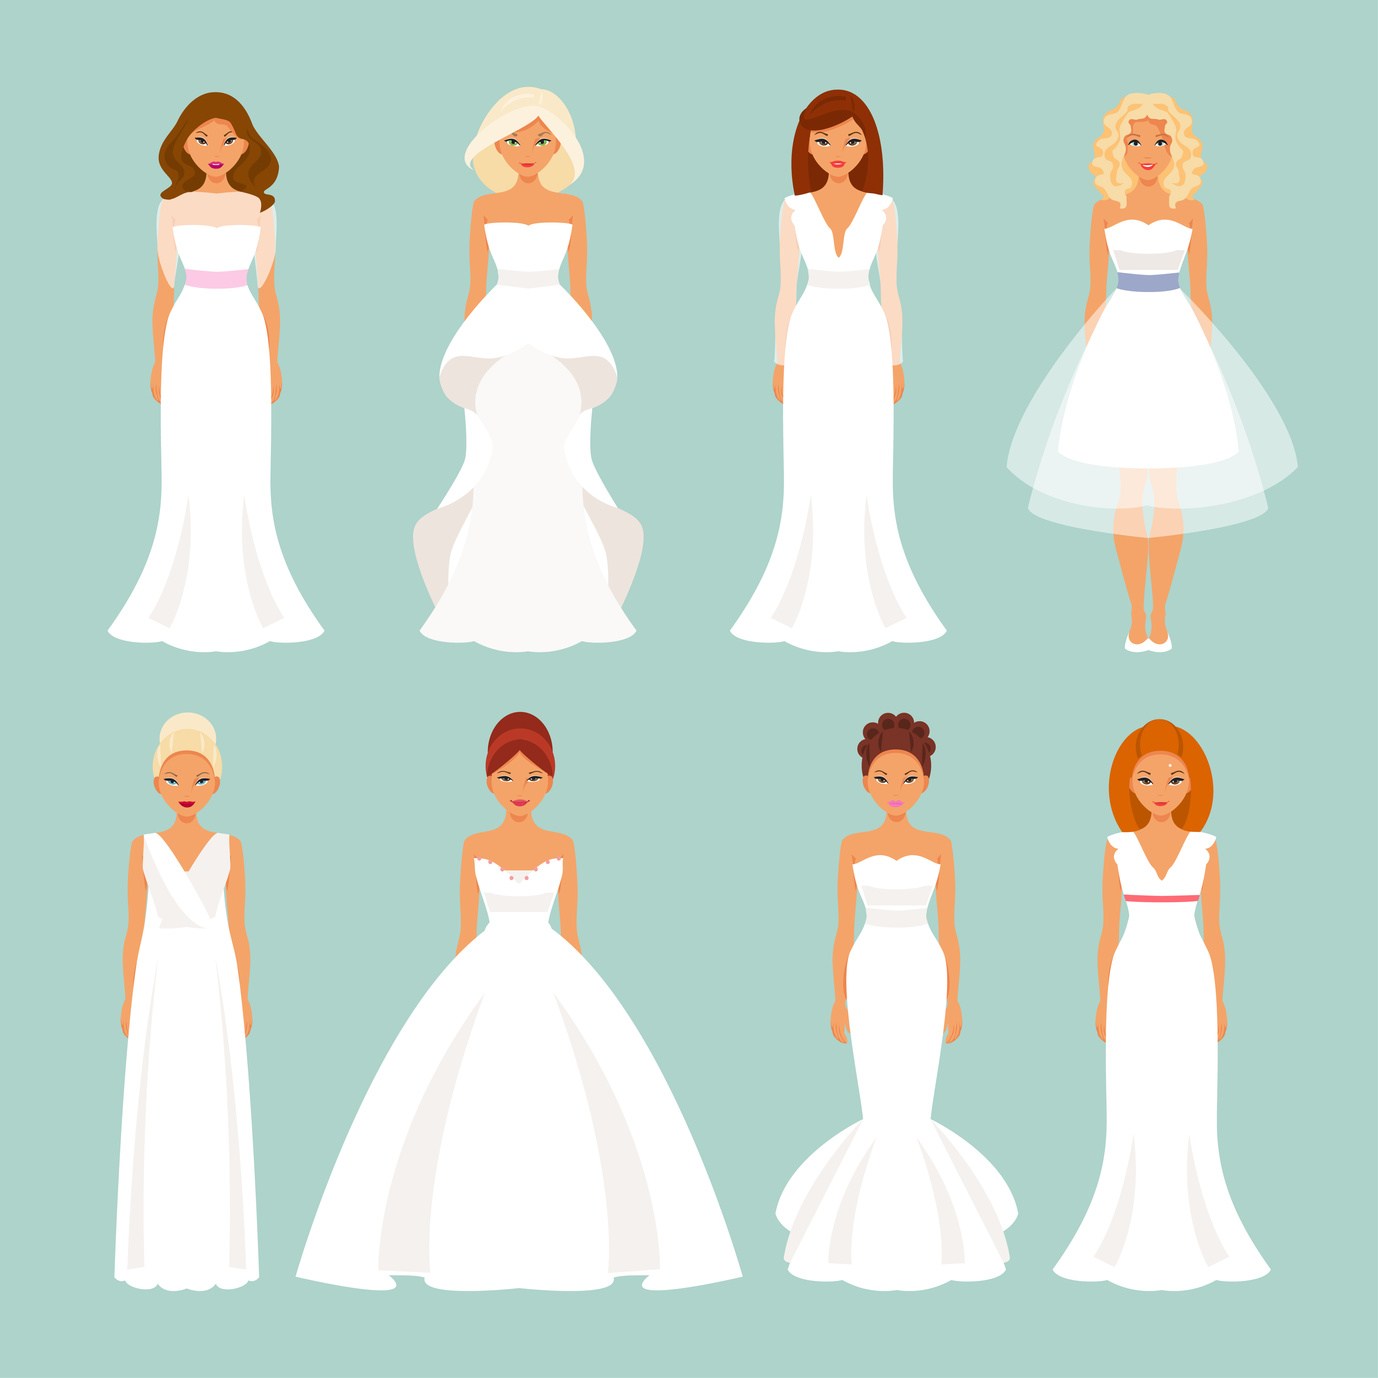 Dr. Tinsley Ariana Taylor Keefe Advises on the Perfect Dress as a Transgender Bride